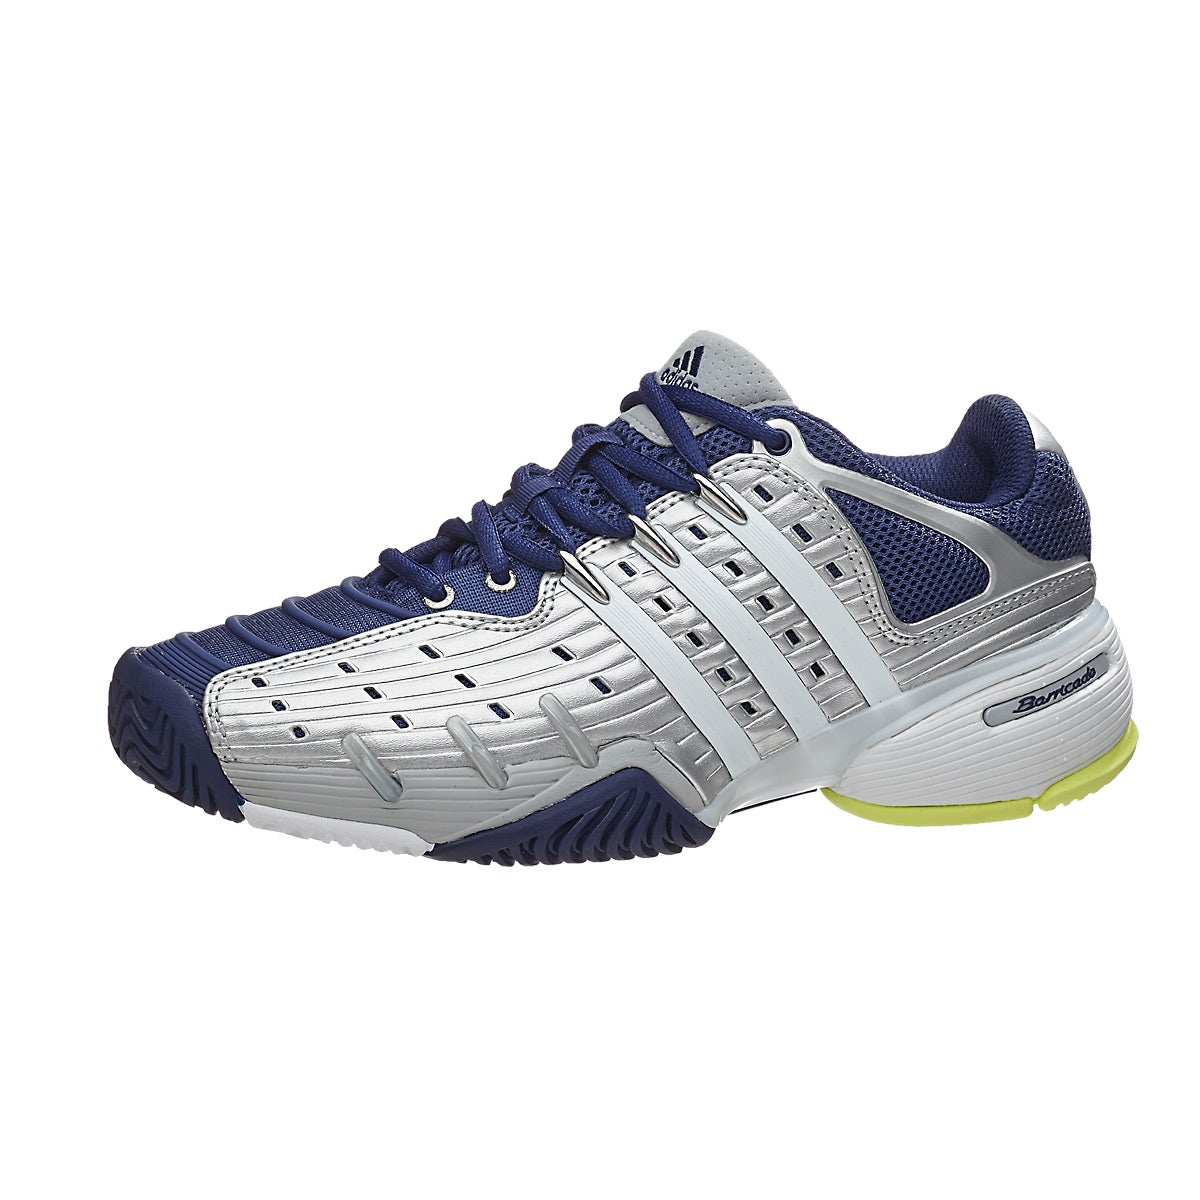 adidas barricade v classic silver/yellow womens shoes